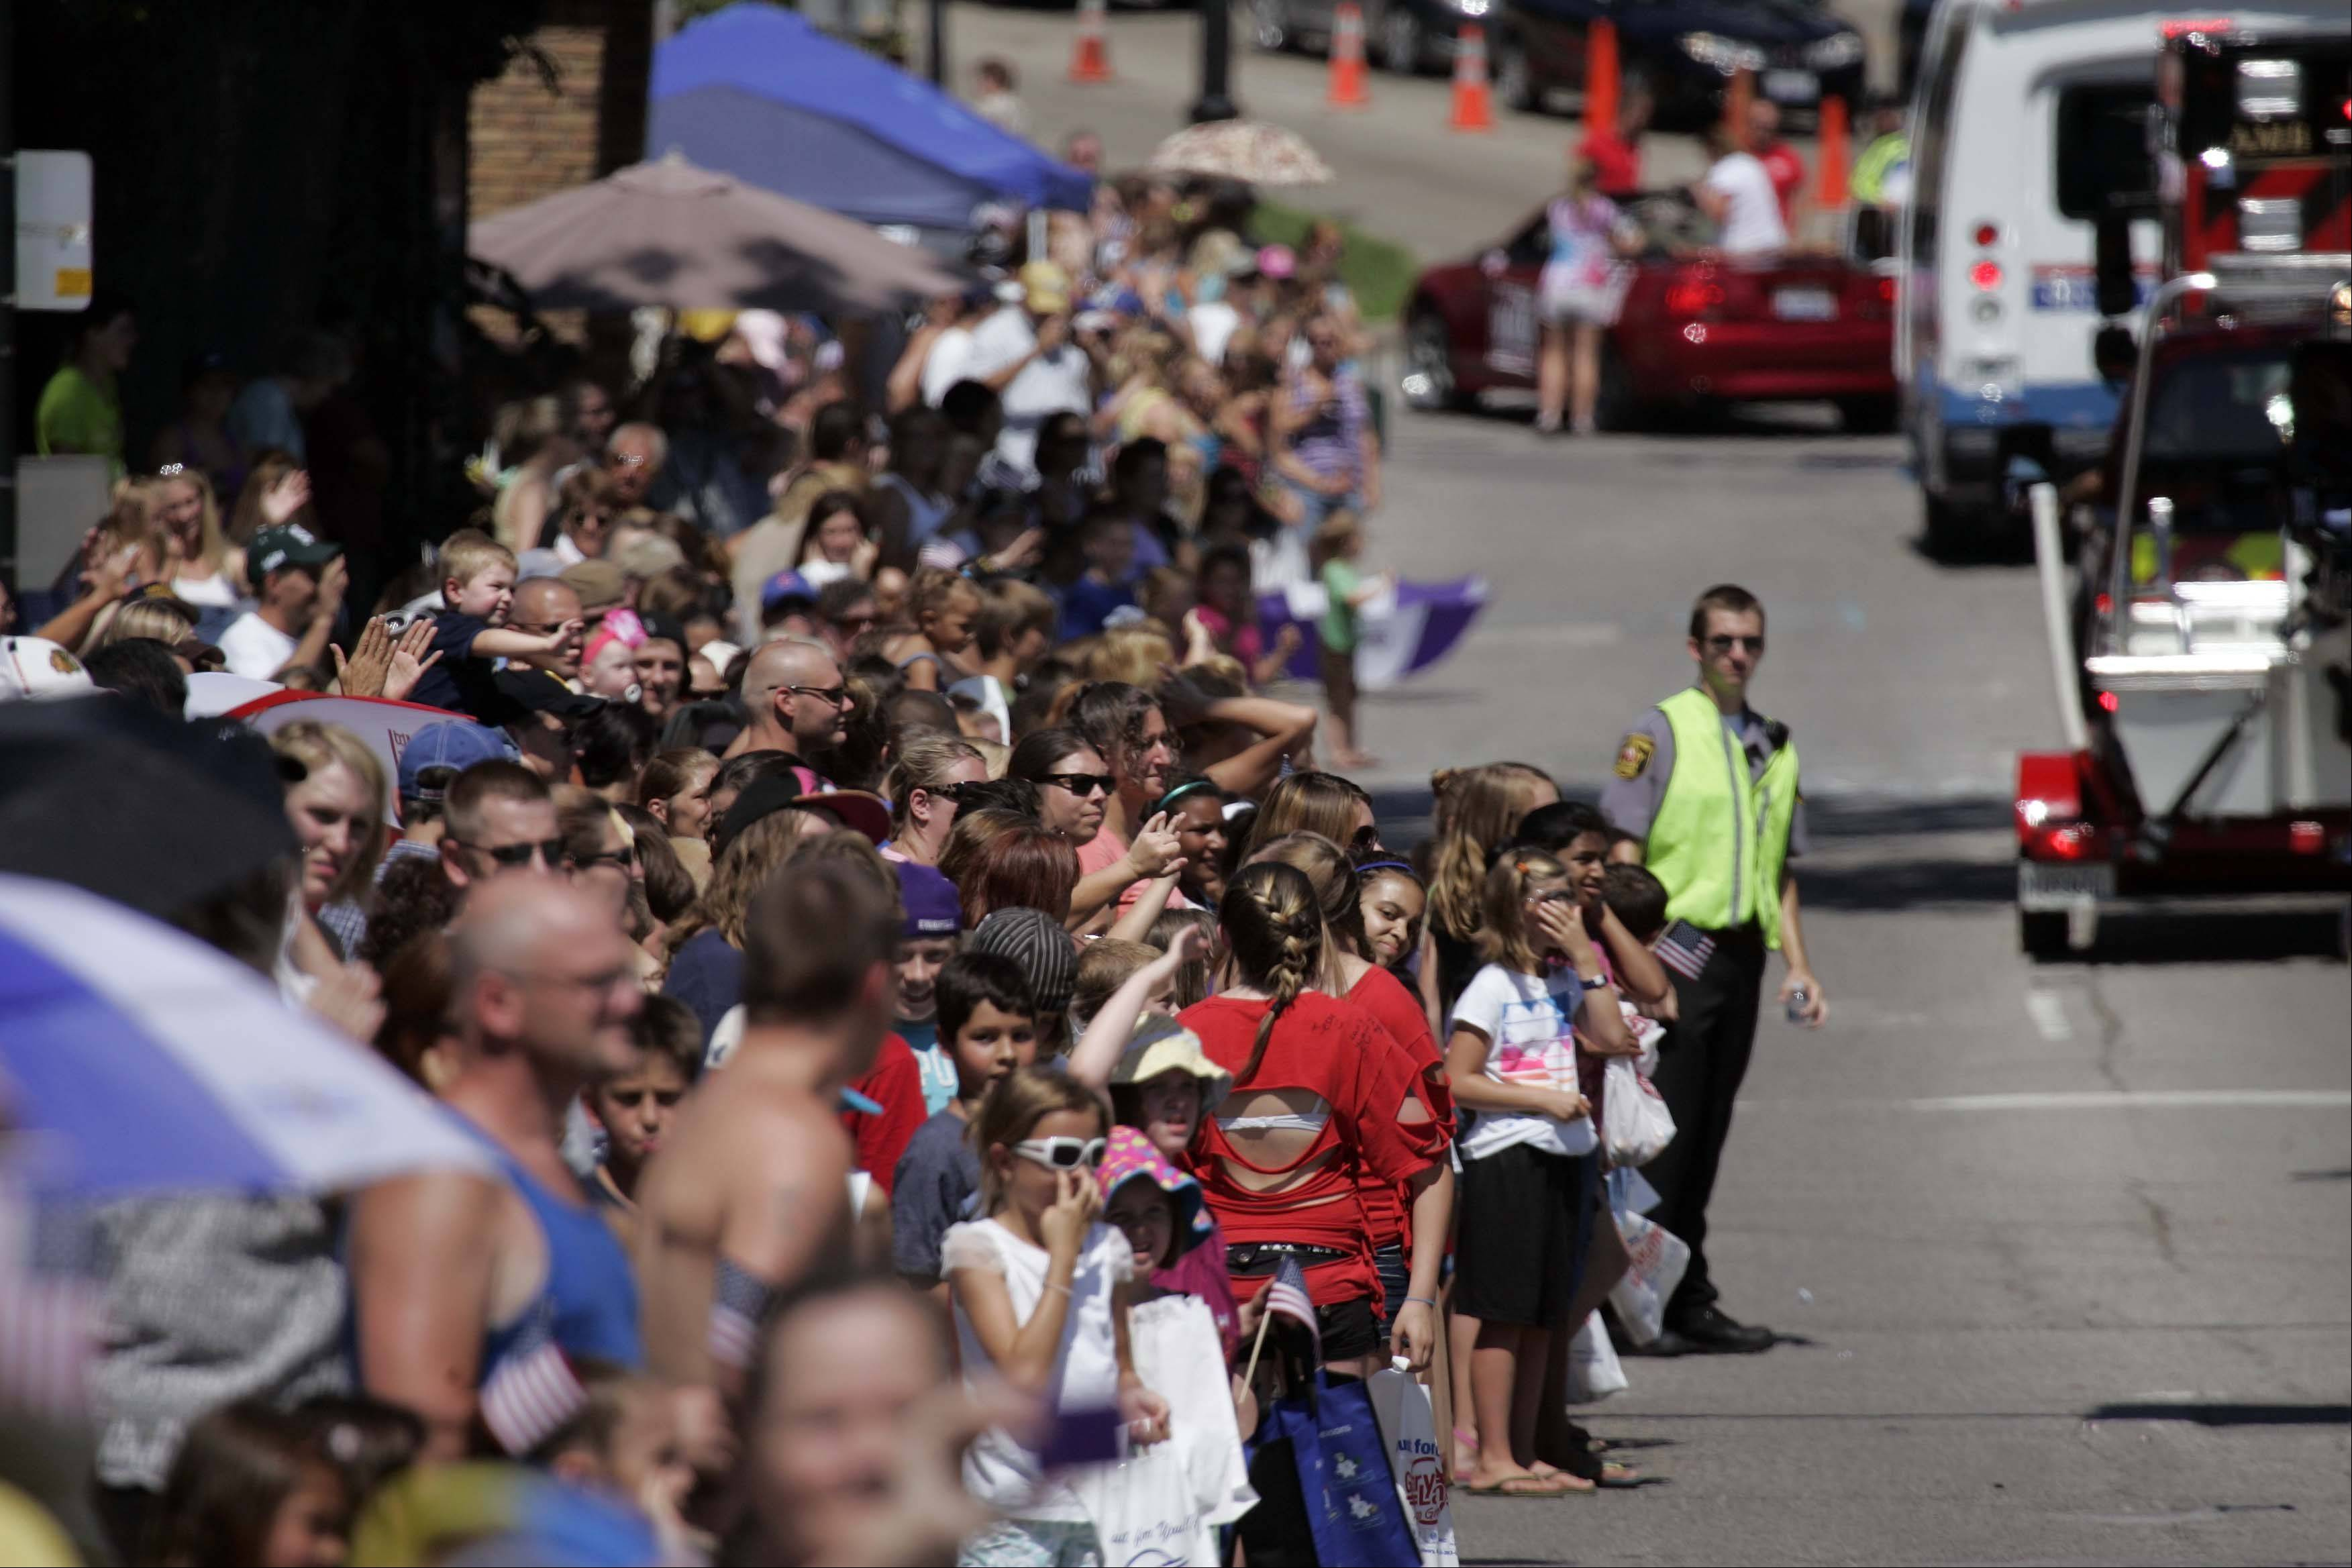 Thousands of people line the streets to see the Under the Sea Parade at the Annual Founders' Days Festival in Algonquin Saturday, July 30, 2011.